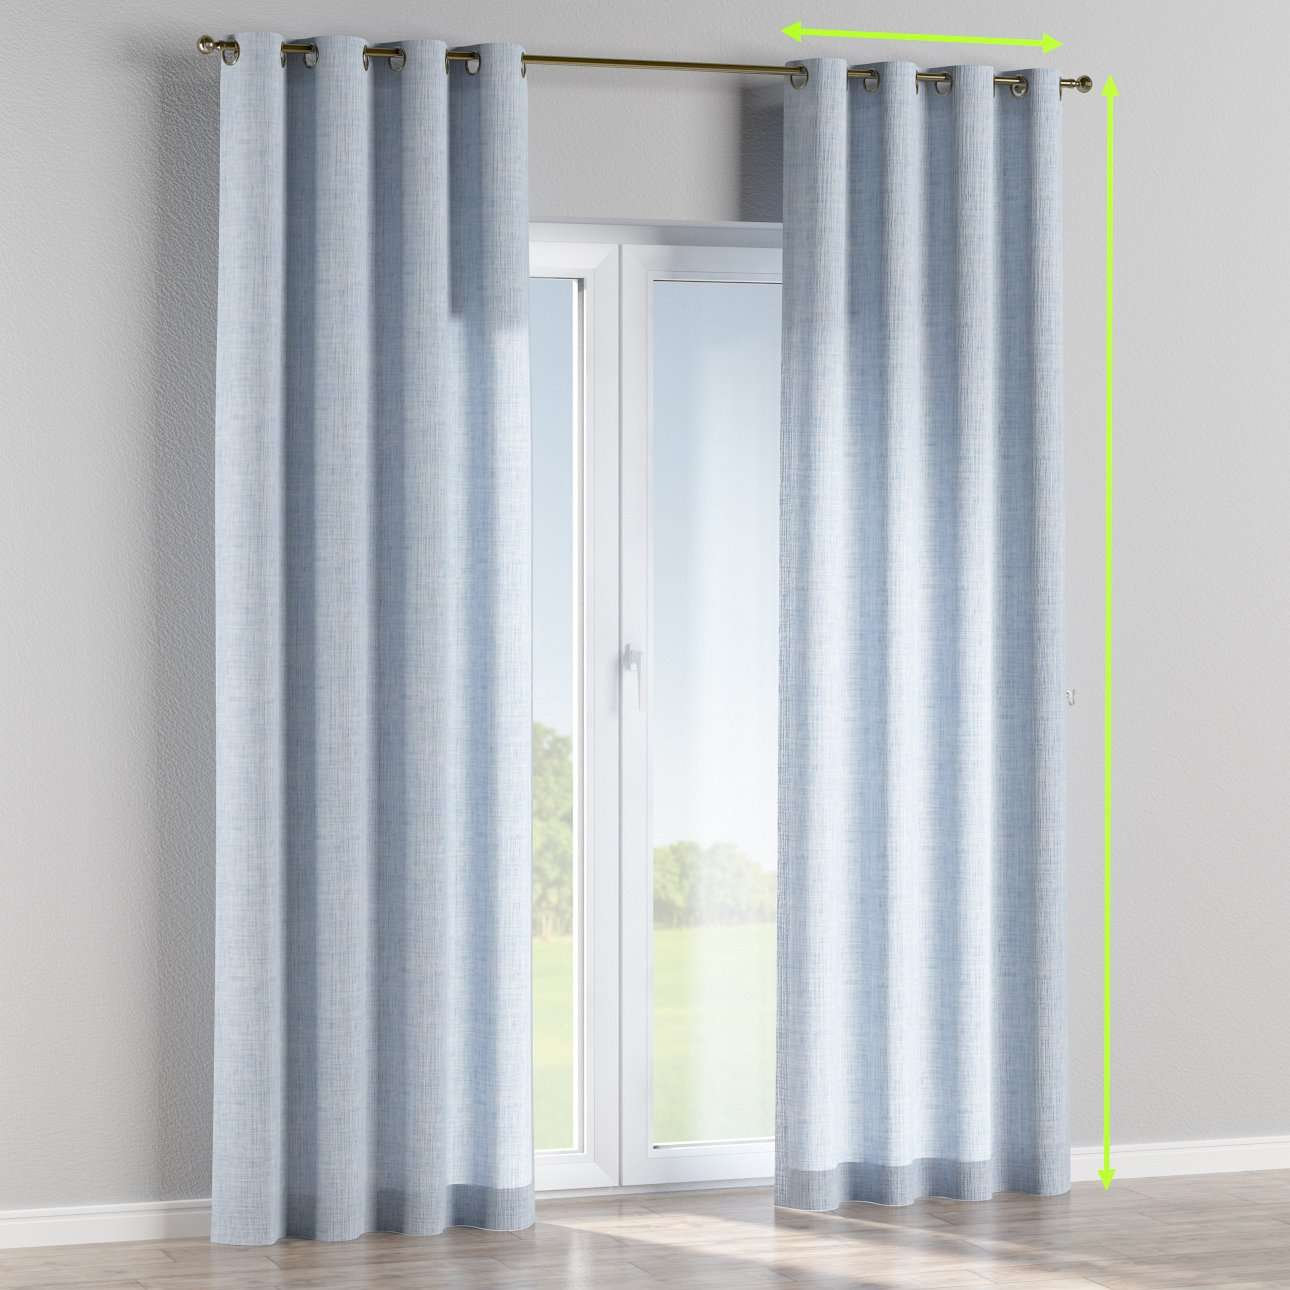 Eyelet curtains in collection Aquarelle, fabric: 140-74